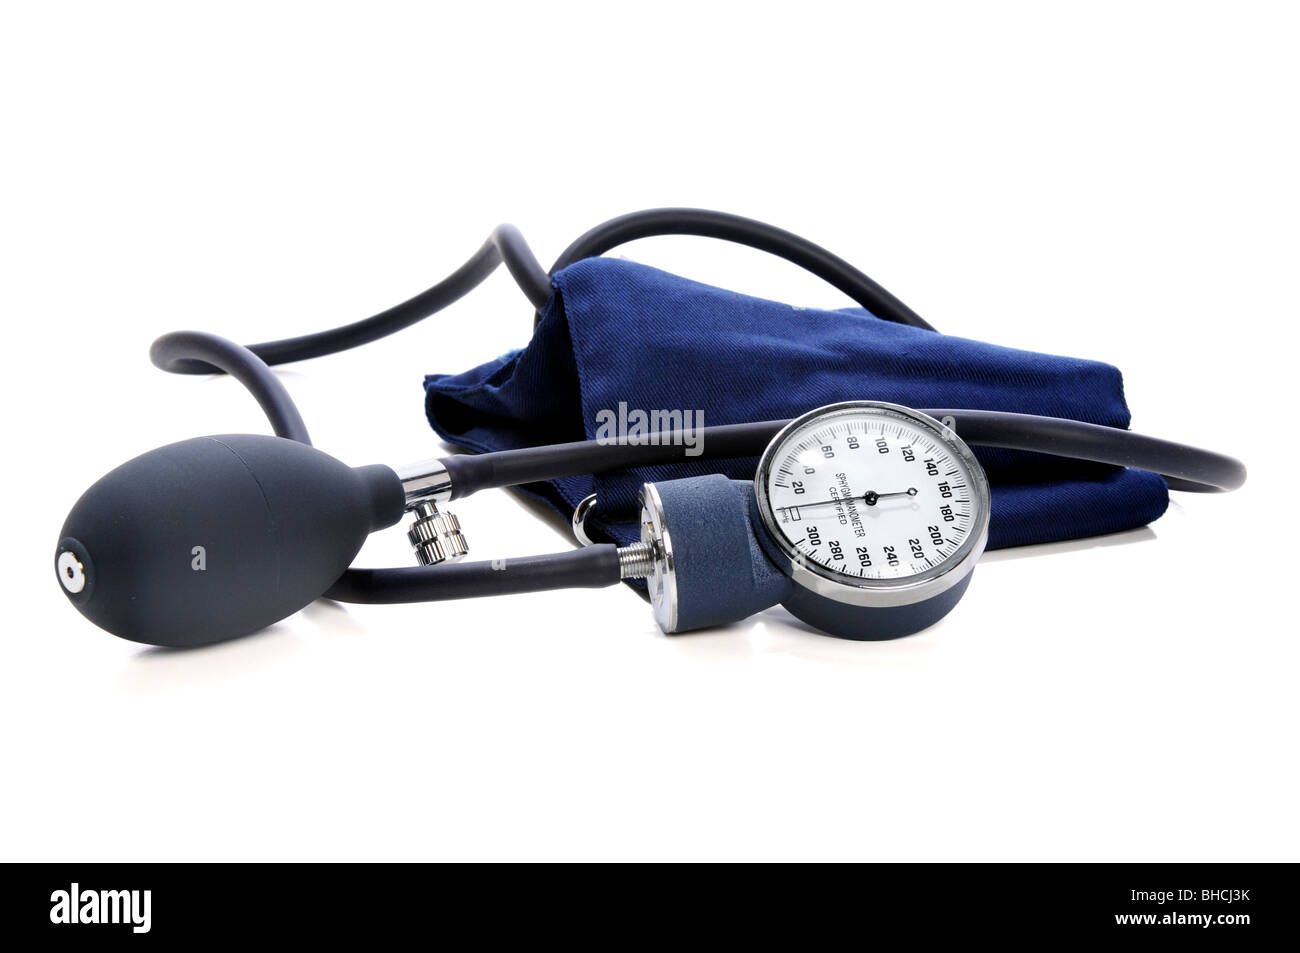 Sphygmomanometer over white background - Stock Image